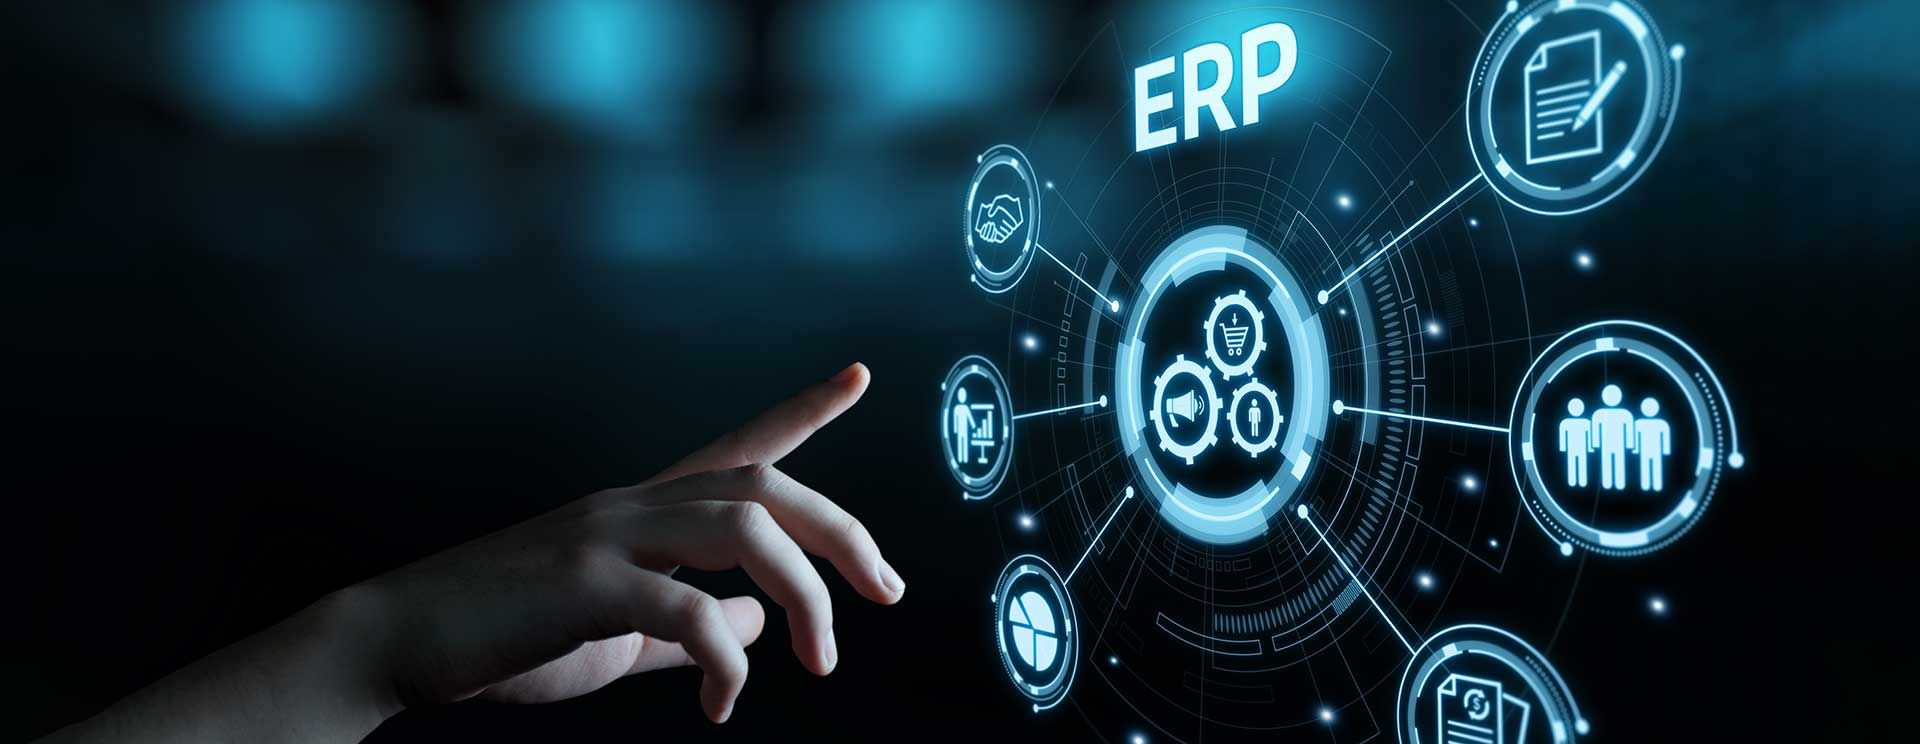 ERP Process Improvement